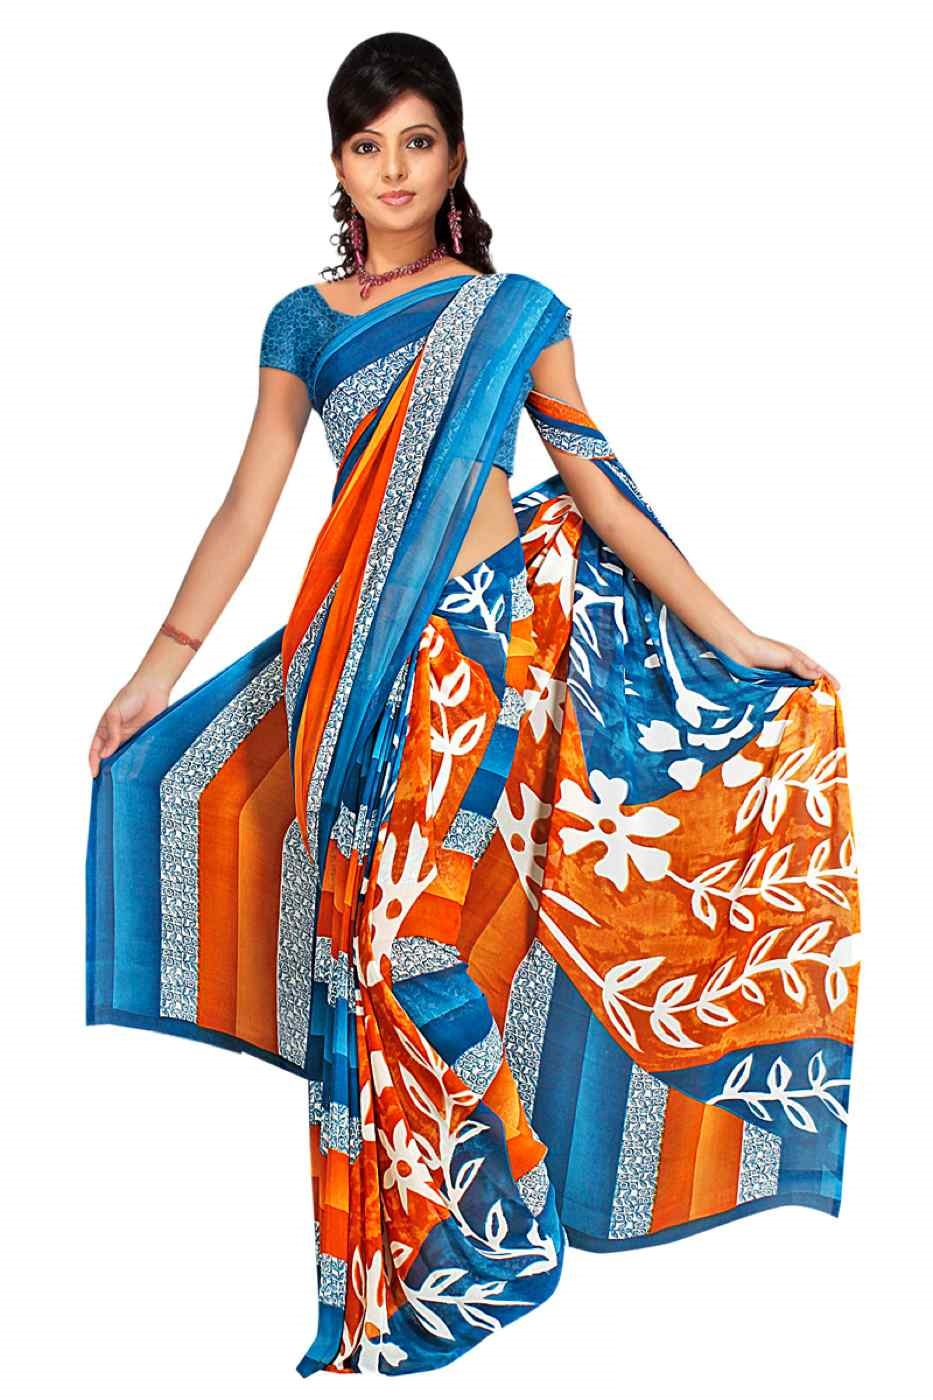 Indian Selections Ekaa Georgette Printed Casual Saree Sari Bellydance fabric at Sears.com